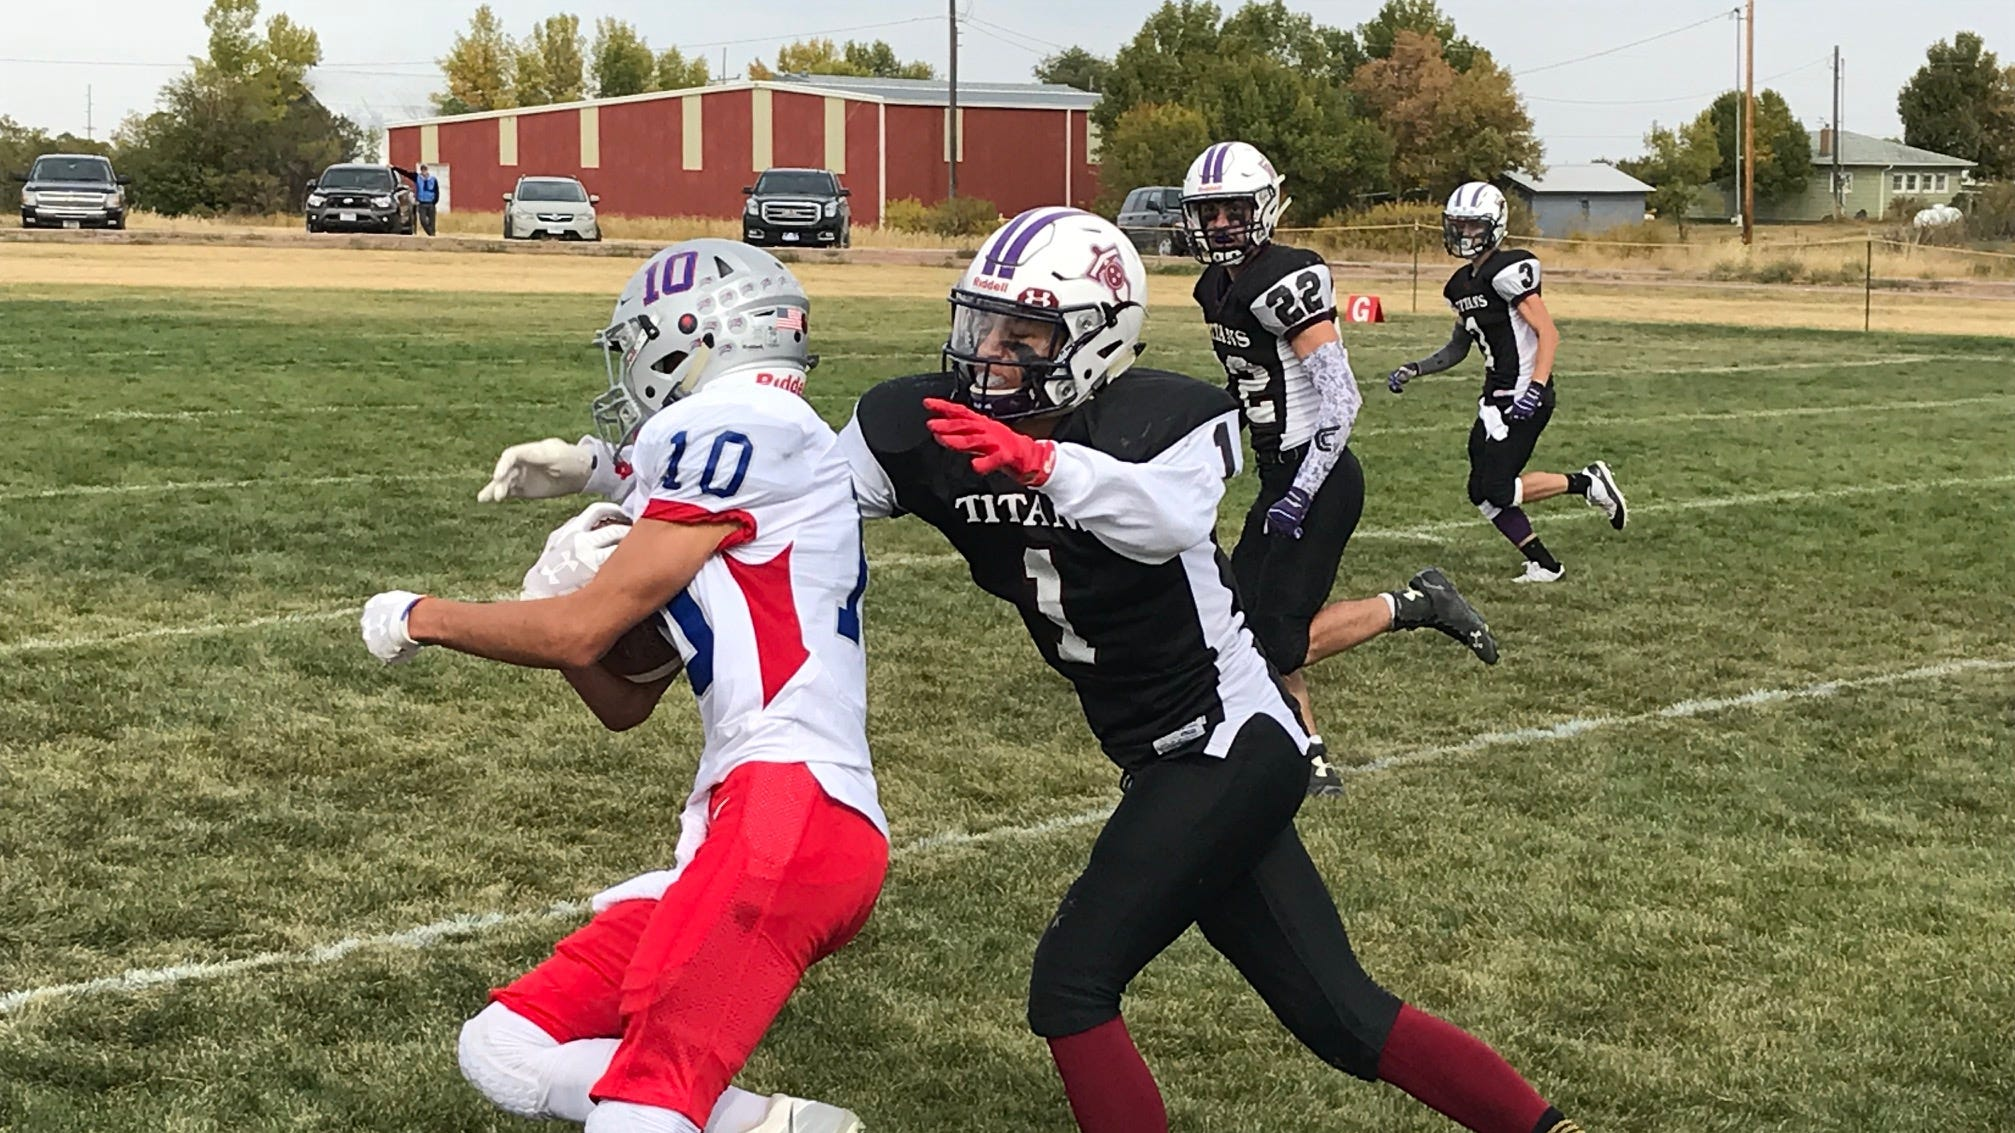 Denton-Geyser-Stanford's Zack Solomon (10) gets wrapped up by Brady Smelser of Power-Dutton-Brady during Six-Man football action in Dutton Saturday.